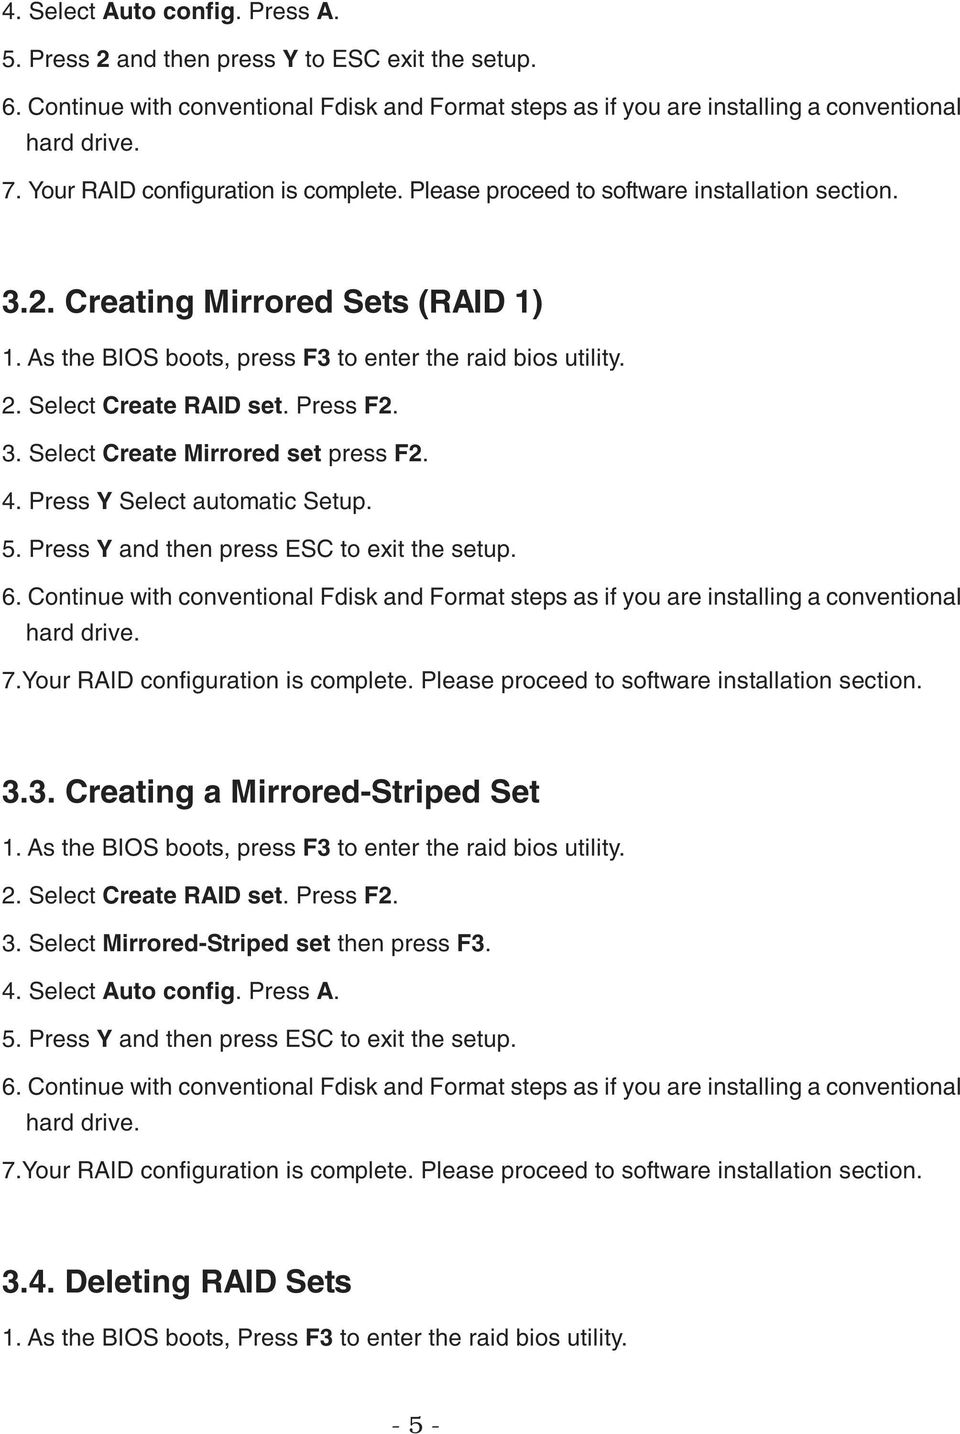 Select Create RAID set. Press F2. 3. Select Create Mirrored set press F2. 4. Press Y Select automatic Setup. 5. Press Y and then press ESC to exit the setup. 6.